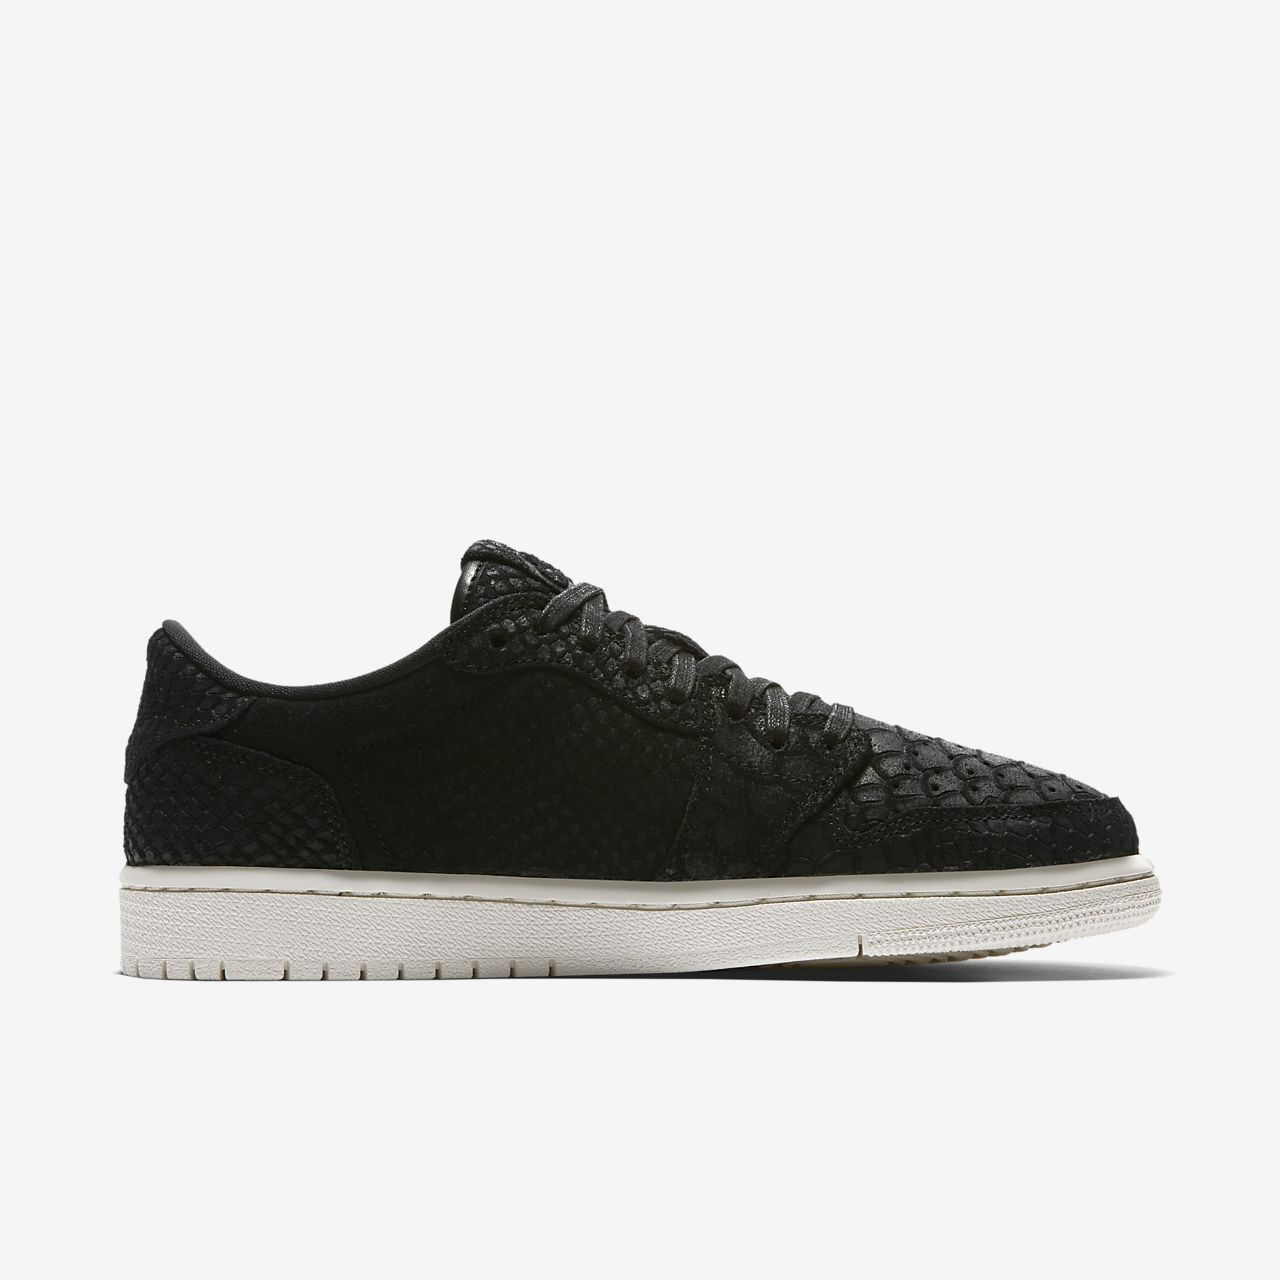 jordan retro 1 low top nz